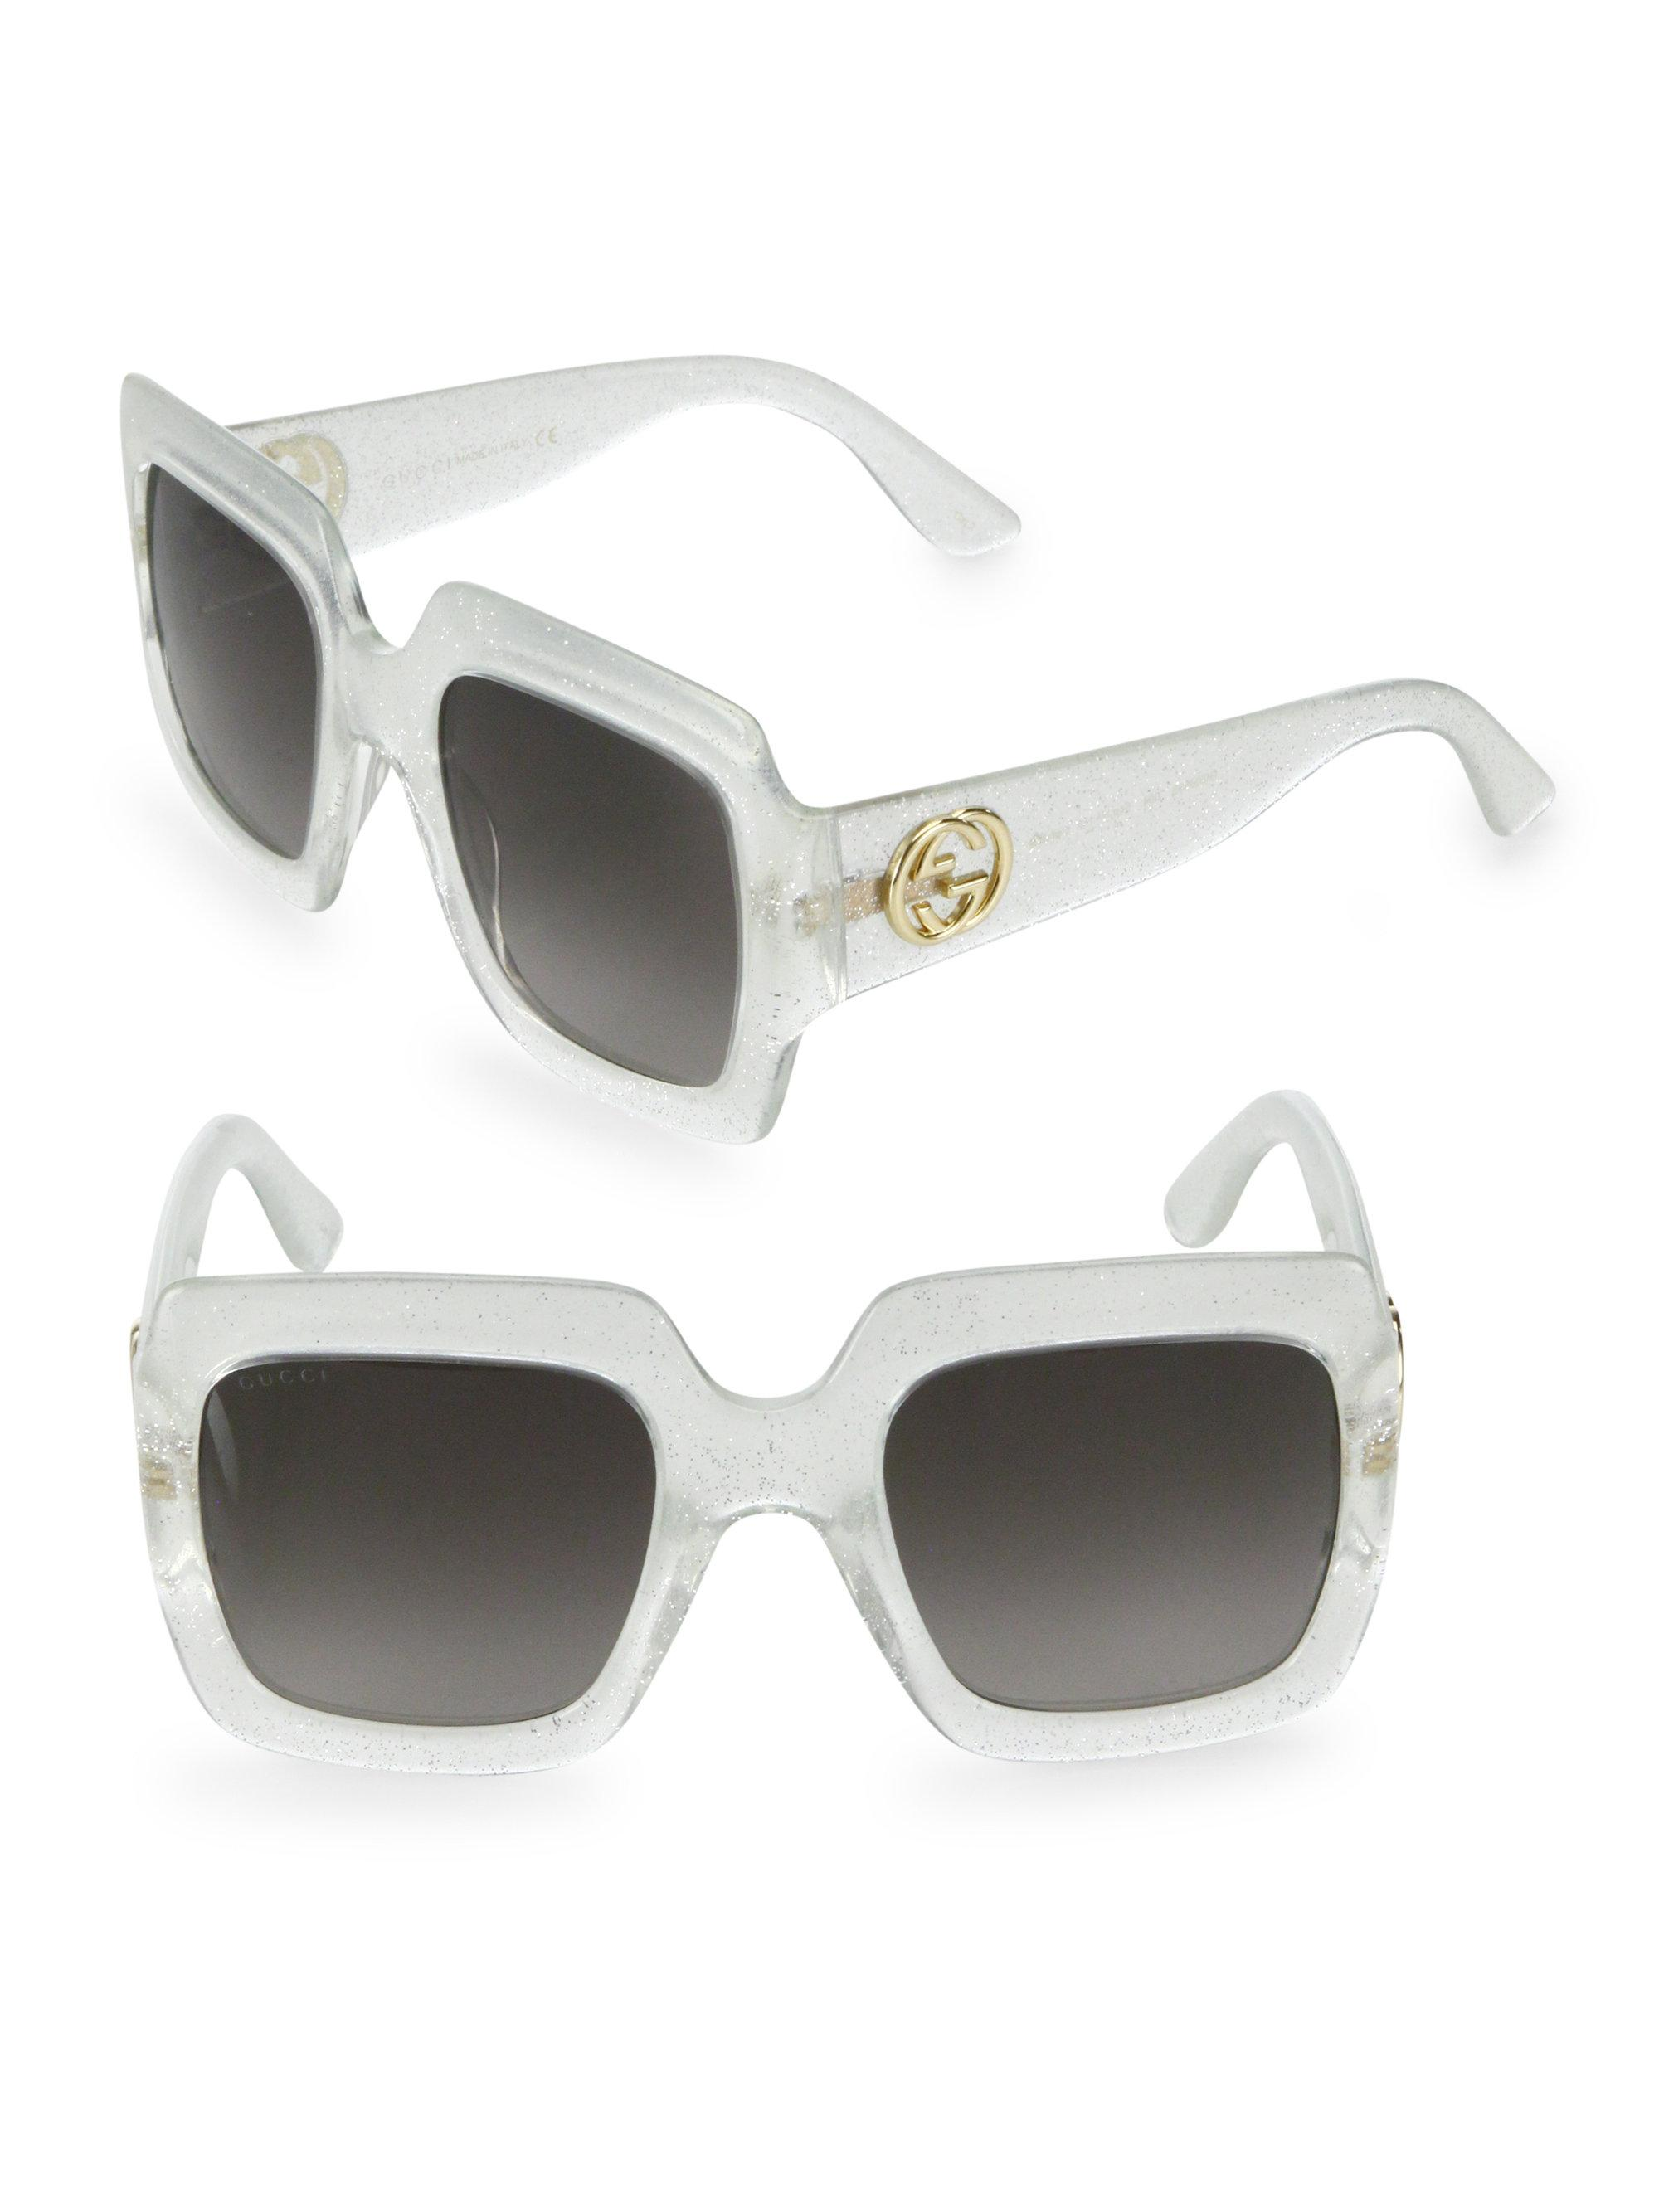 629e4176b7b Lyst - Gucci 54mm Oversized Glitter Square Sunglasses in Metallic